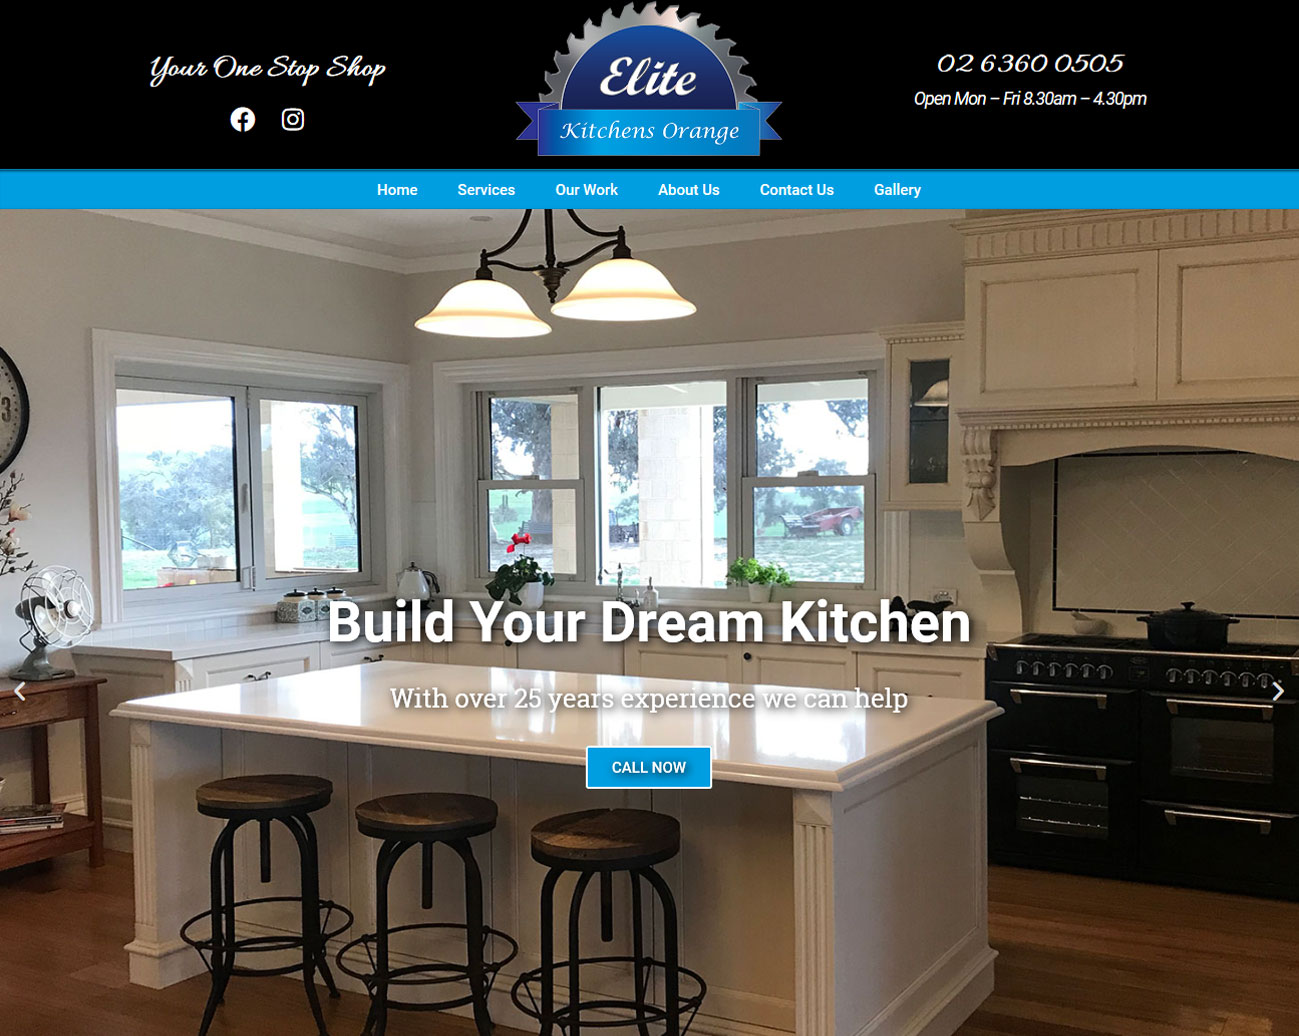 Elite-Kitchens-Orange-Portfolio-Website-Created